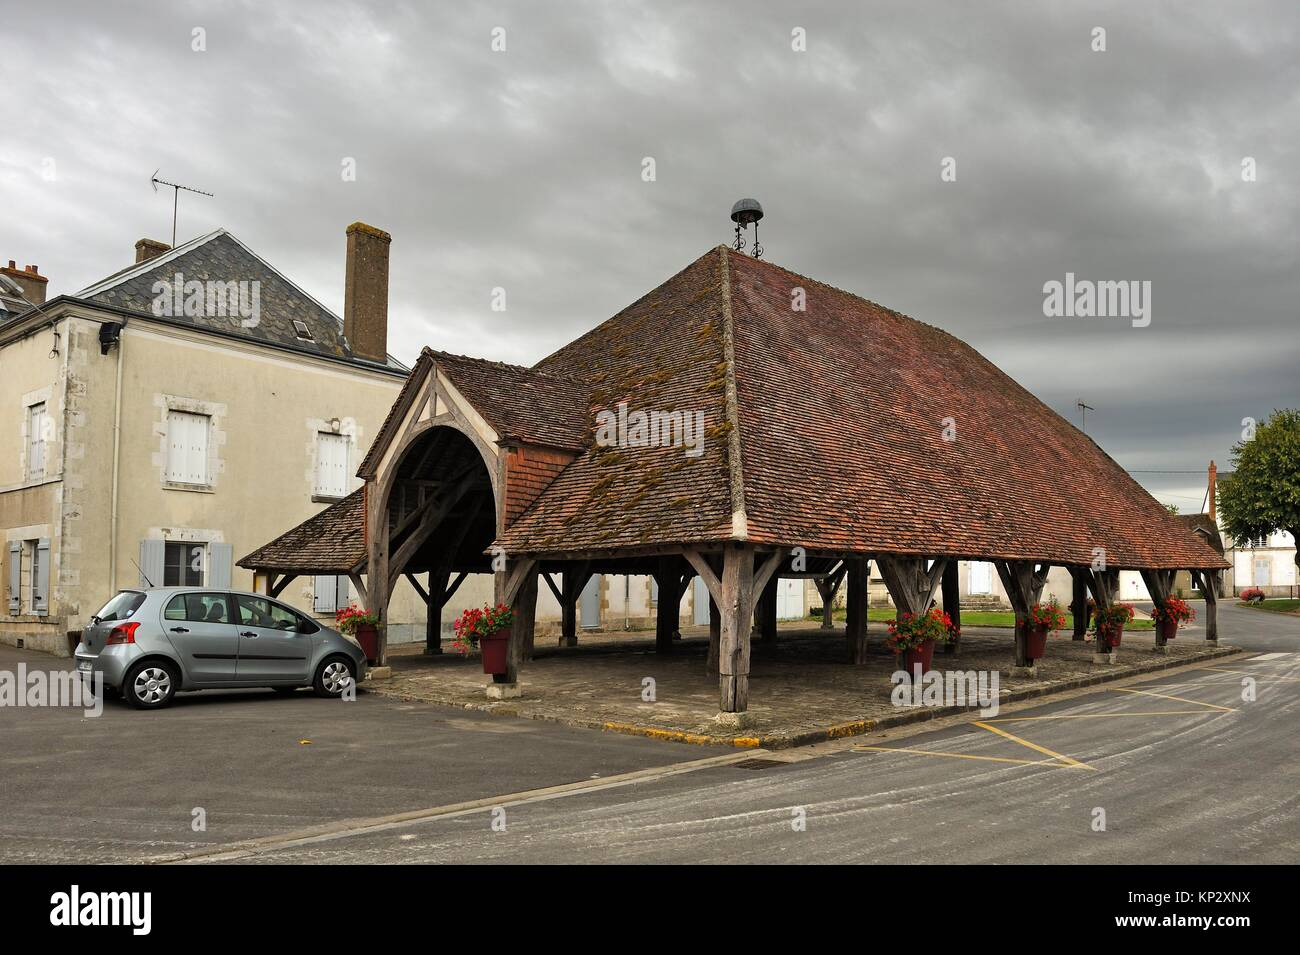 covered market at Ascheres-le-Marche, Loiret department, Centre-Val-de-Loire region, France, Europe. - Stock Image